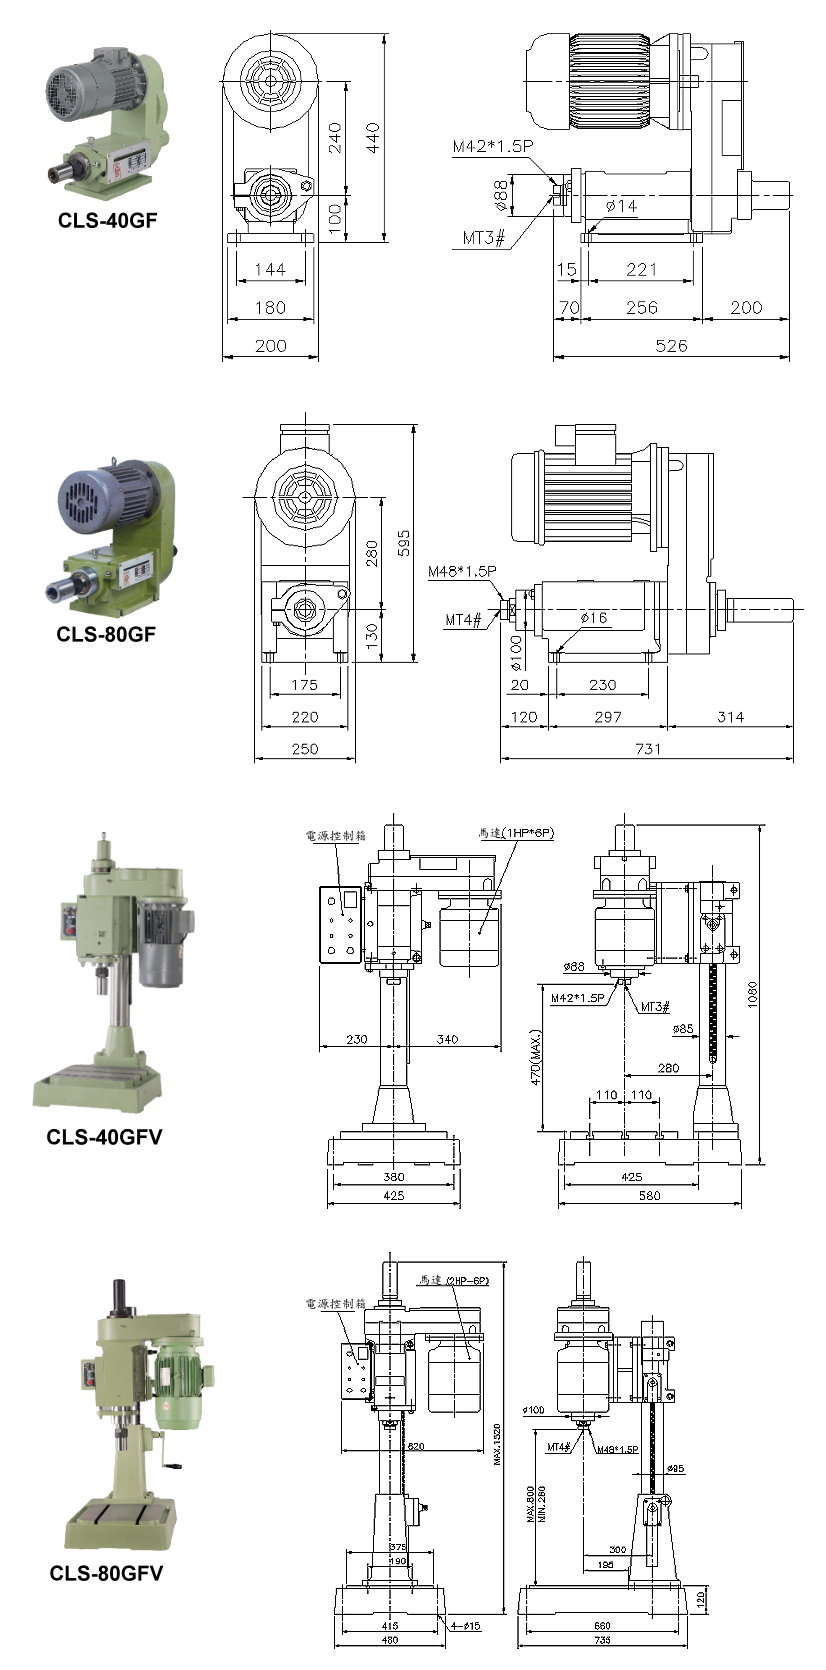 Auto Lead Screw Tapping Machine-CLS-40GF, CLS-80GF, CLS-40GFV, CLS-80GFV